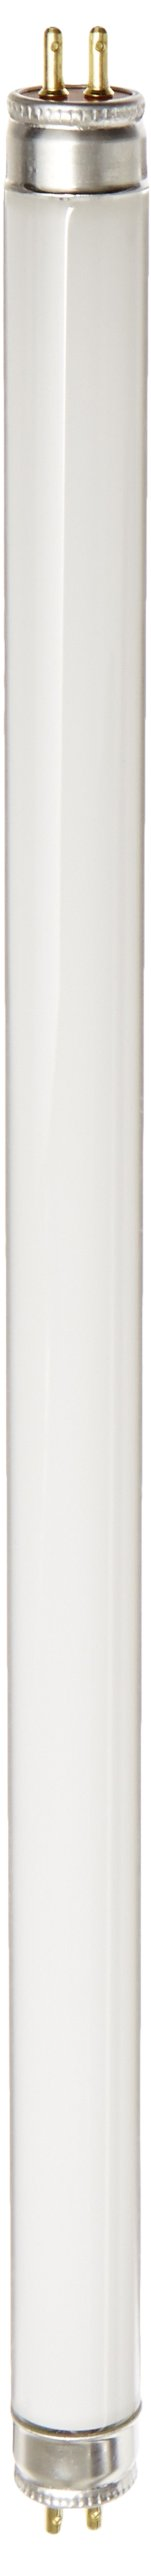 UVP 34-0006-01 Replacement UV Tube for EL Series UV Lamps, 11.33'' Length, 365nm Longwave, 8W